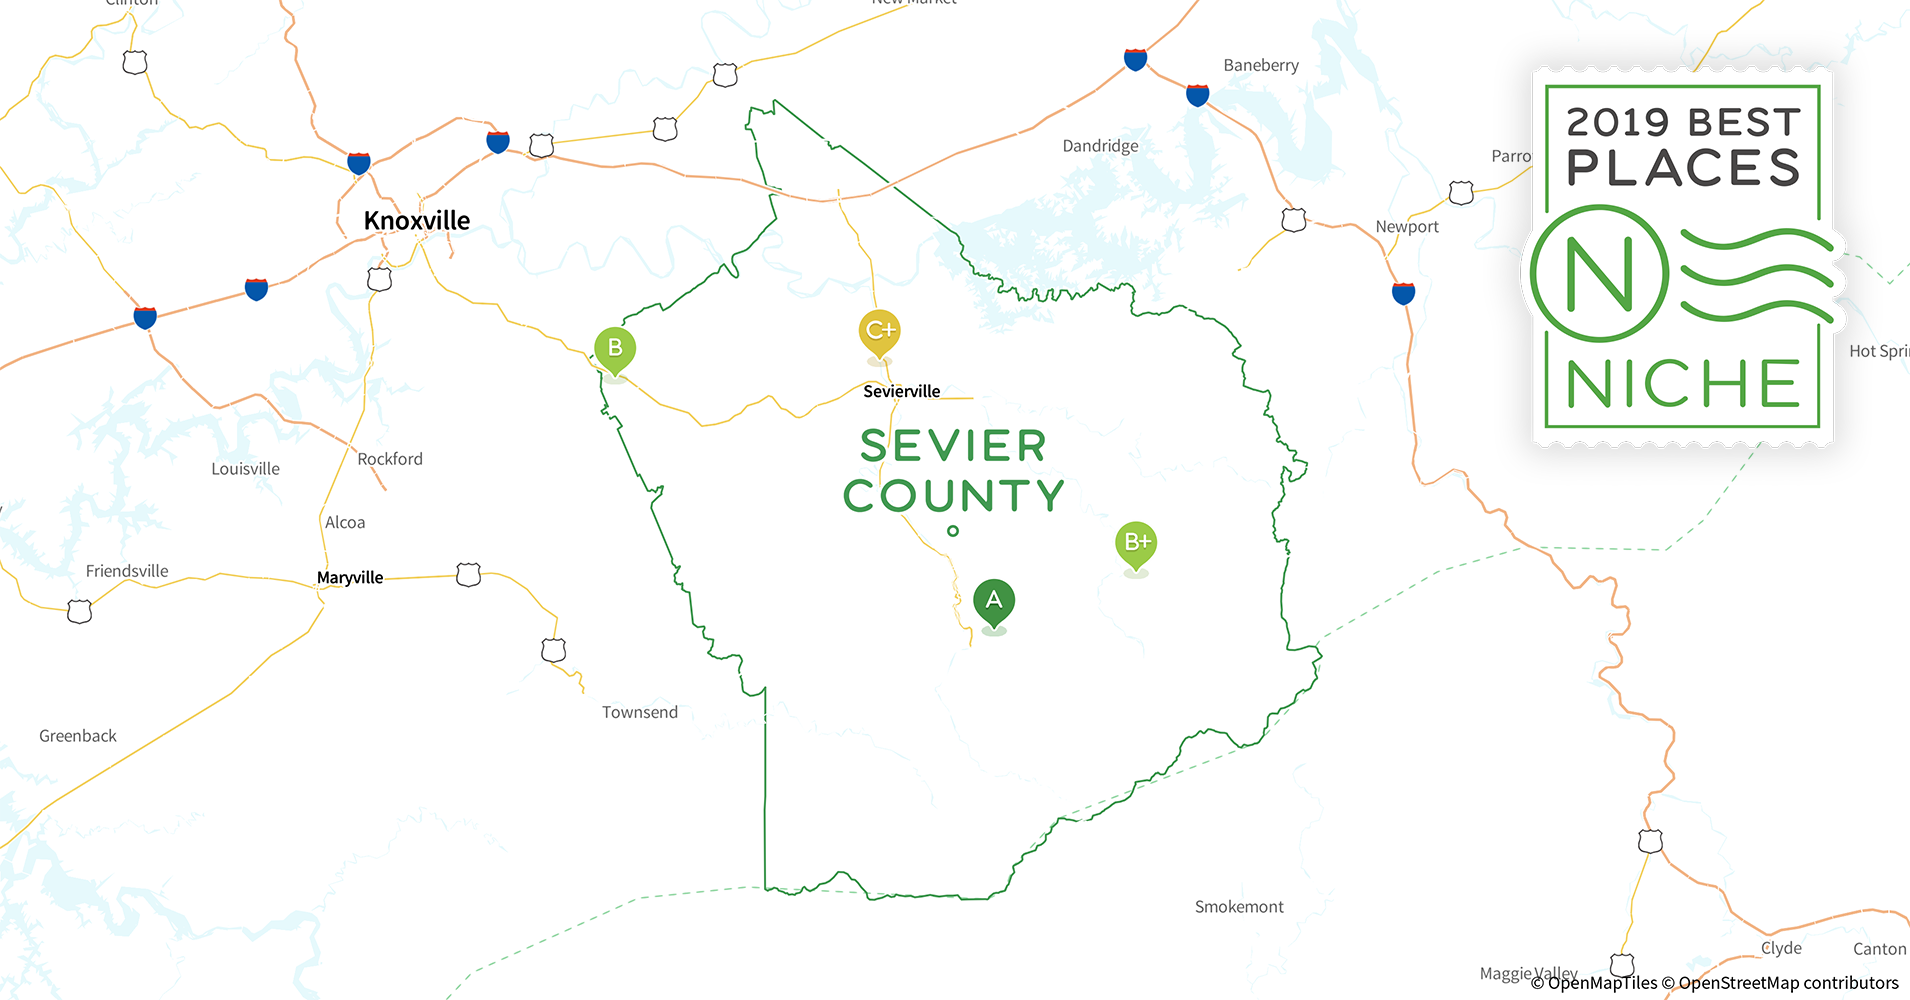 2019 Best Places to Live in Sevier County, TN - Niche Map Of Cities Near Gatlinburg Tn on